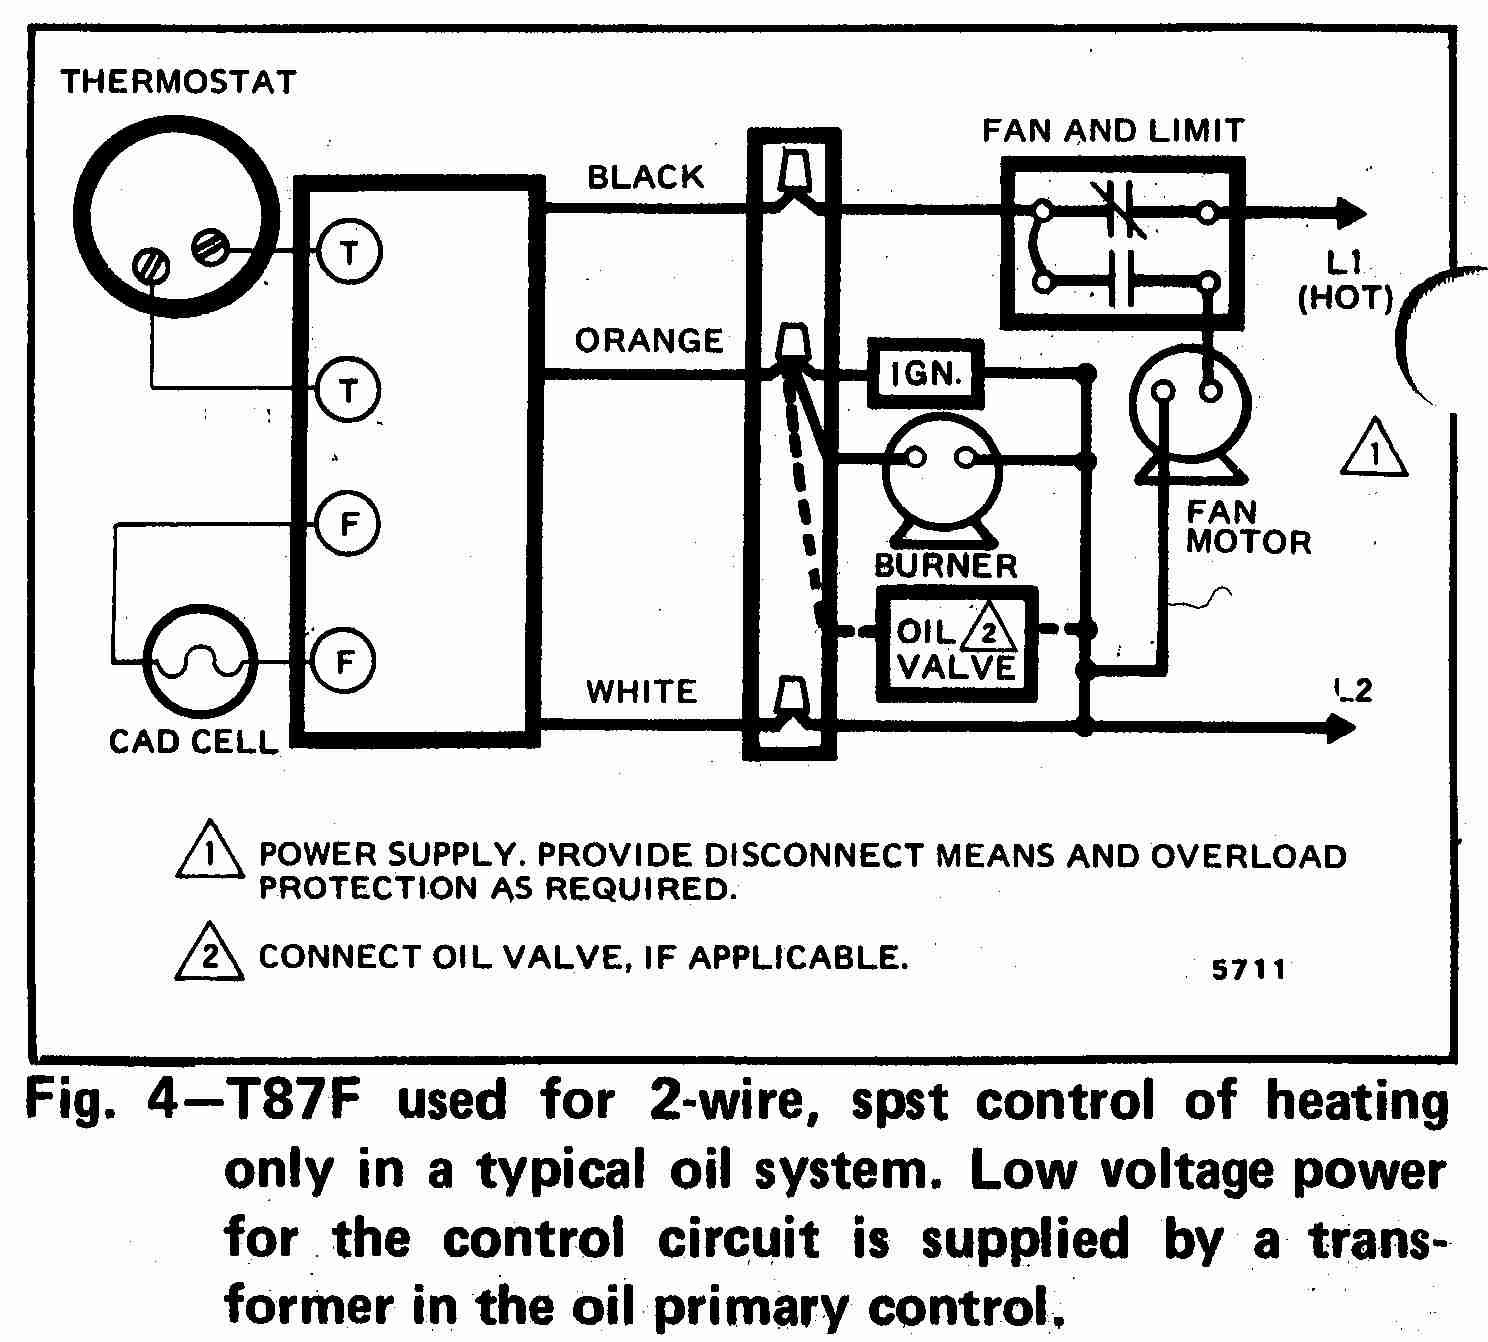 American Standard Thermostat Wiring Diagram : Standard heat pump thermostat wiring diagram for best